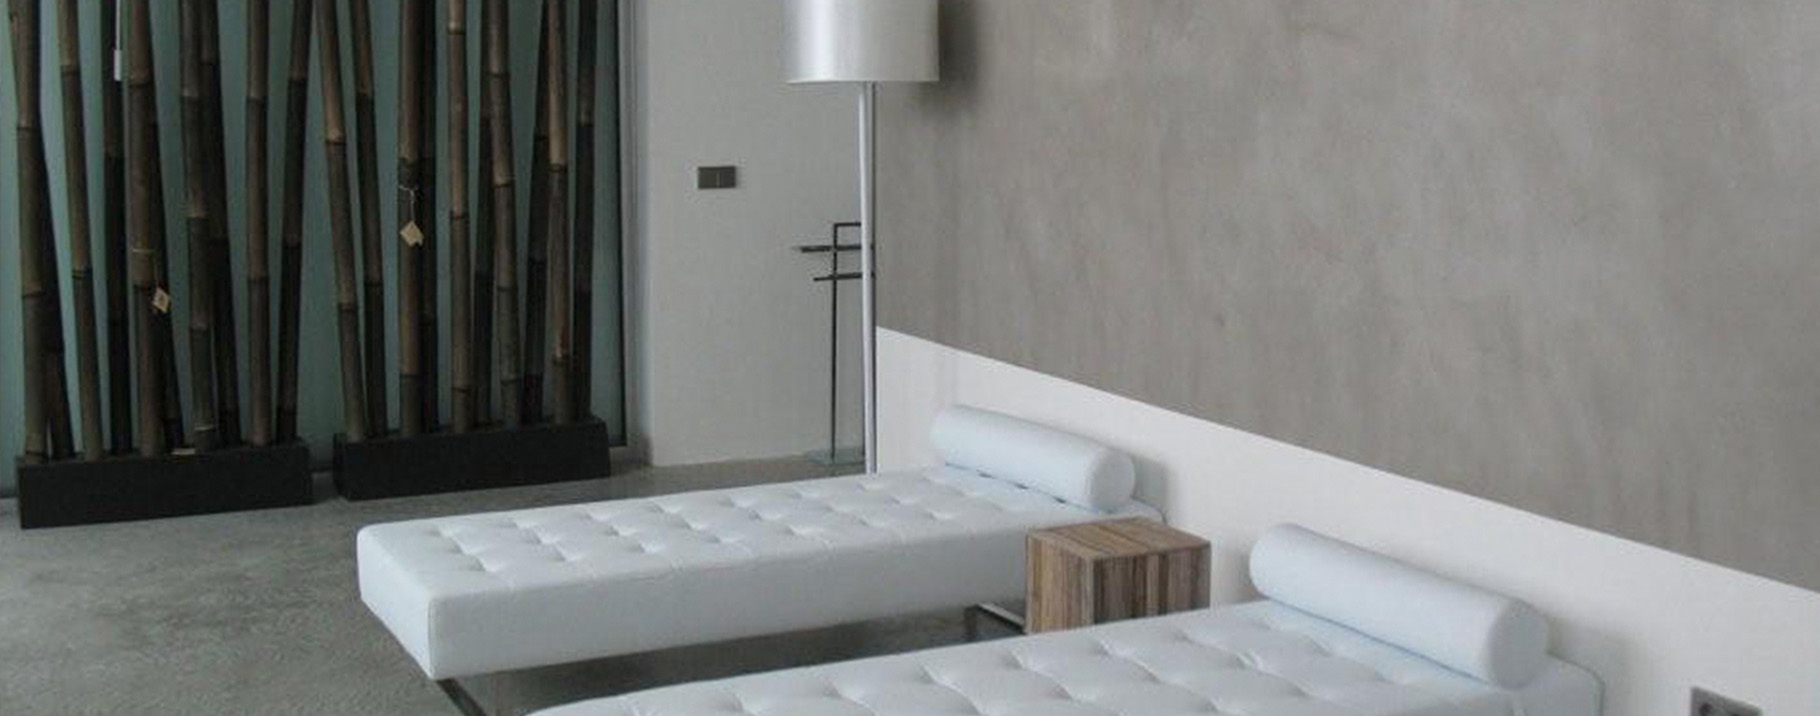 -EDFAN Line: wall finishes and products. MicroCement. Thincrete. Revokolor